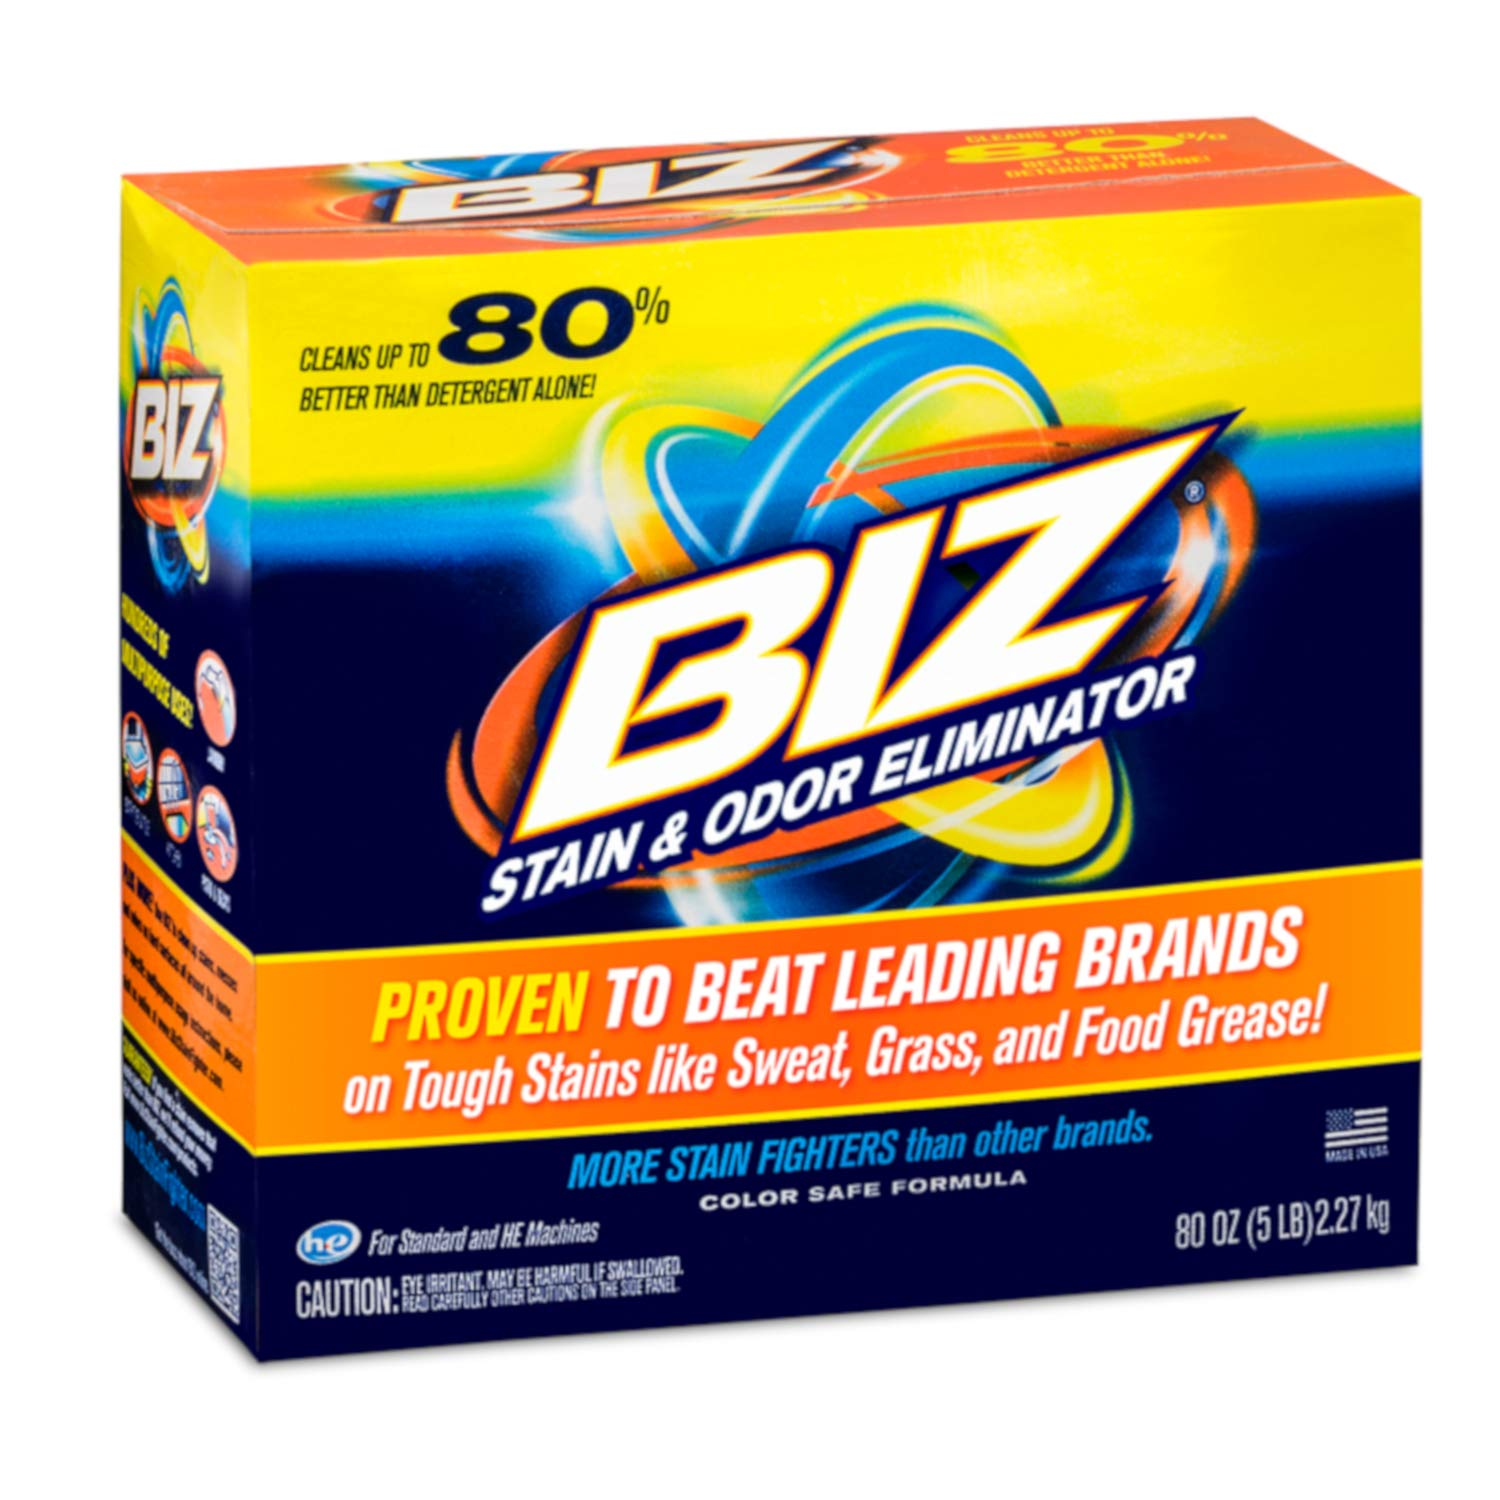 Biz Laundry Detergent Powder Booster, Stain & Odor Removal - 4-Pack, 80 Ounce Boxes by BIZ